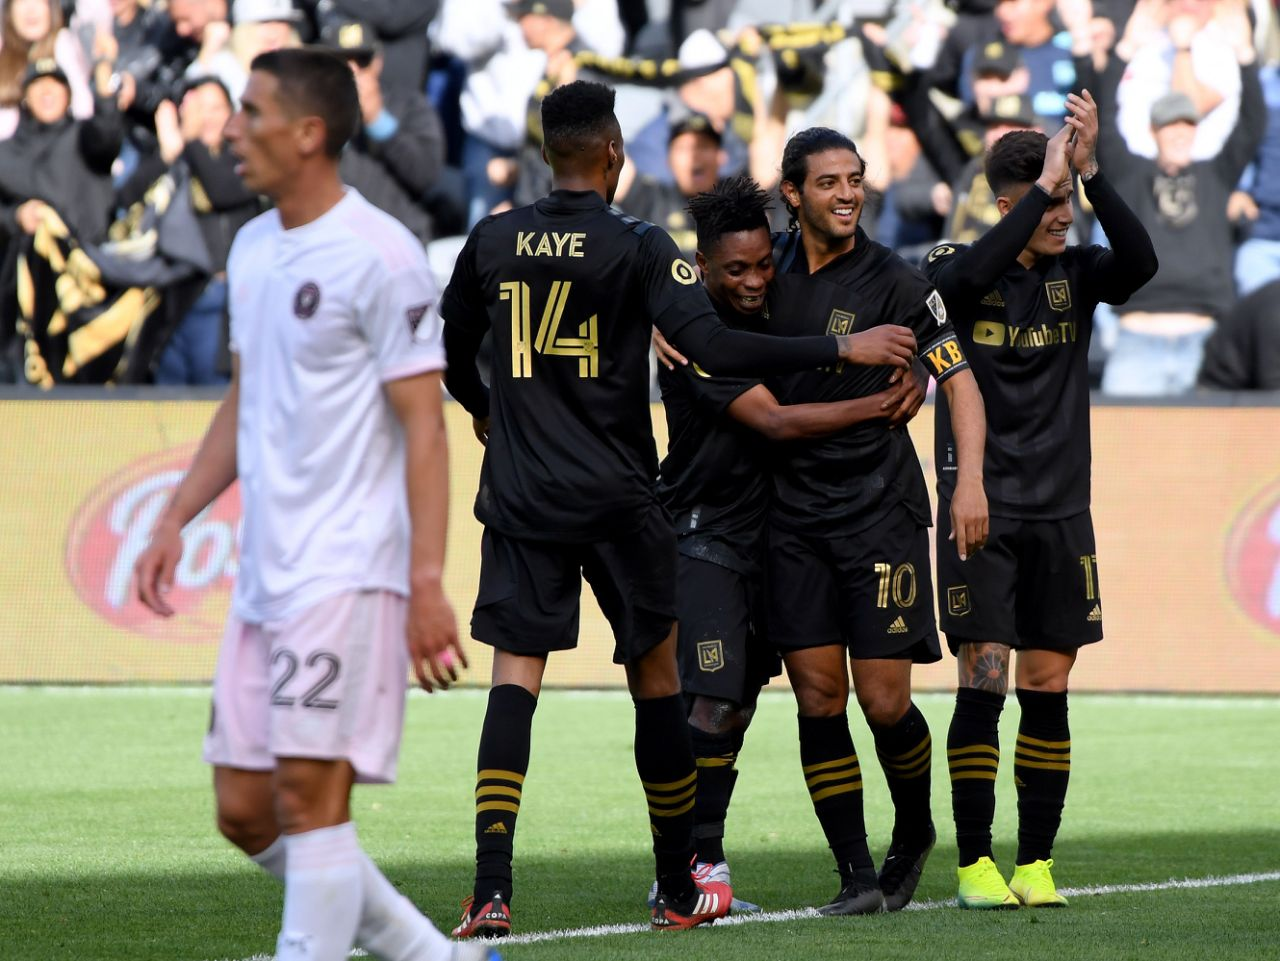 Los Angeles FC 1-0 Inter Miami CF: Carlos Vela's first-half strike earns LAFC opening day victory over MLS debutants